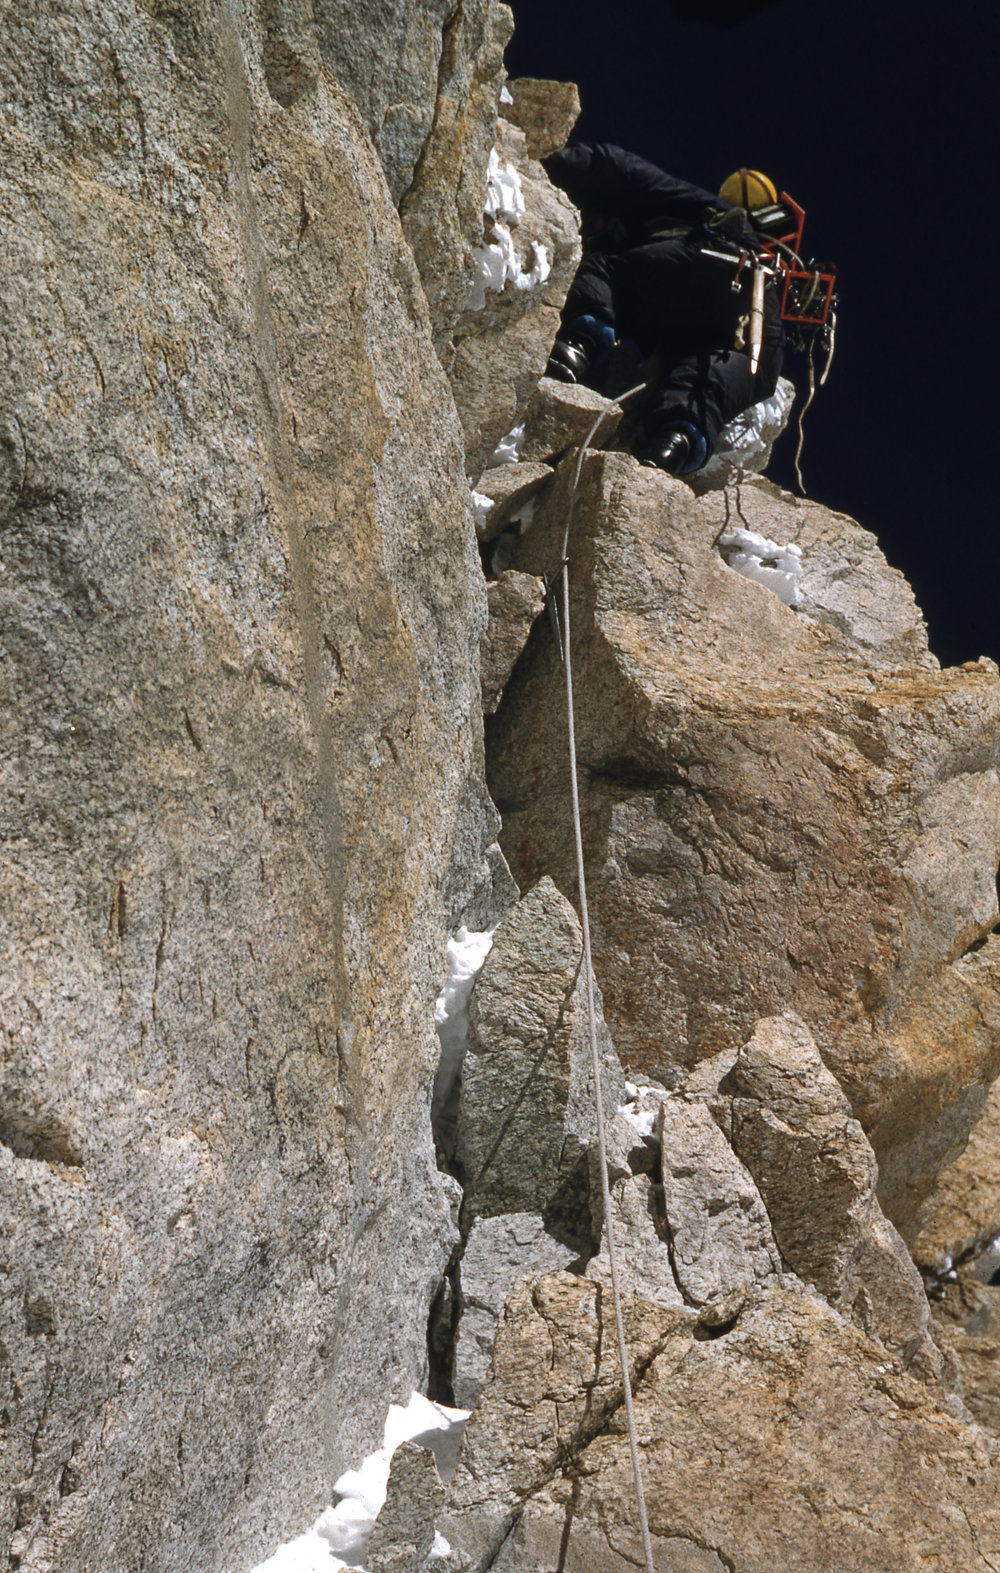 Joe Brown on Kangchenjunga's crack, 1955. Photo: Royal Geographical Society